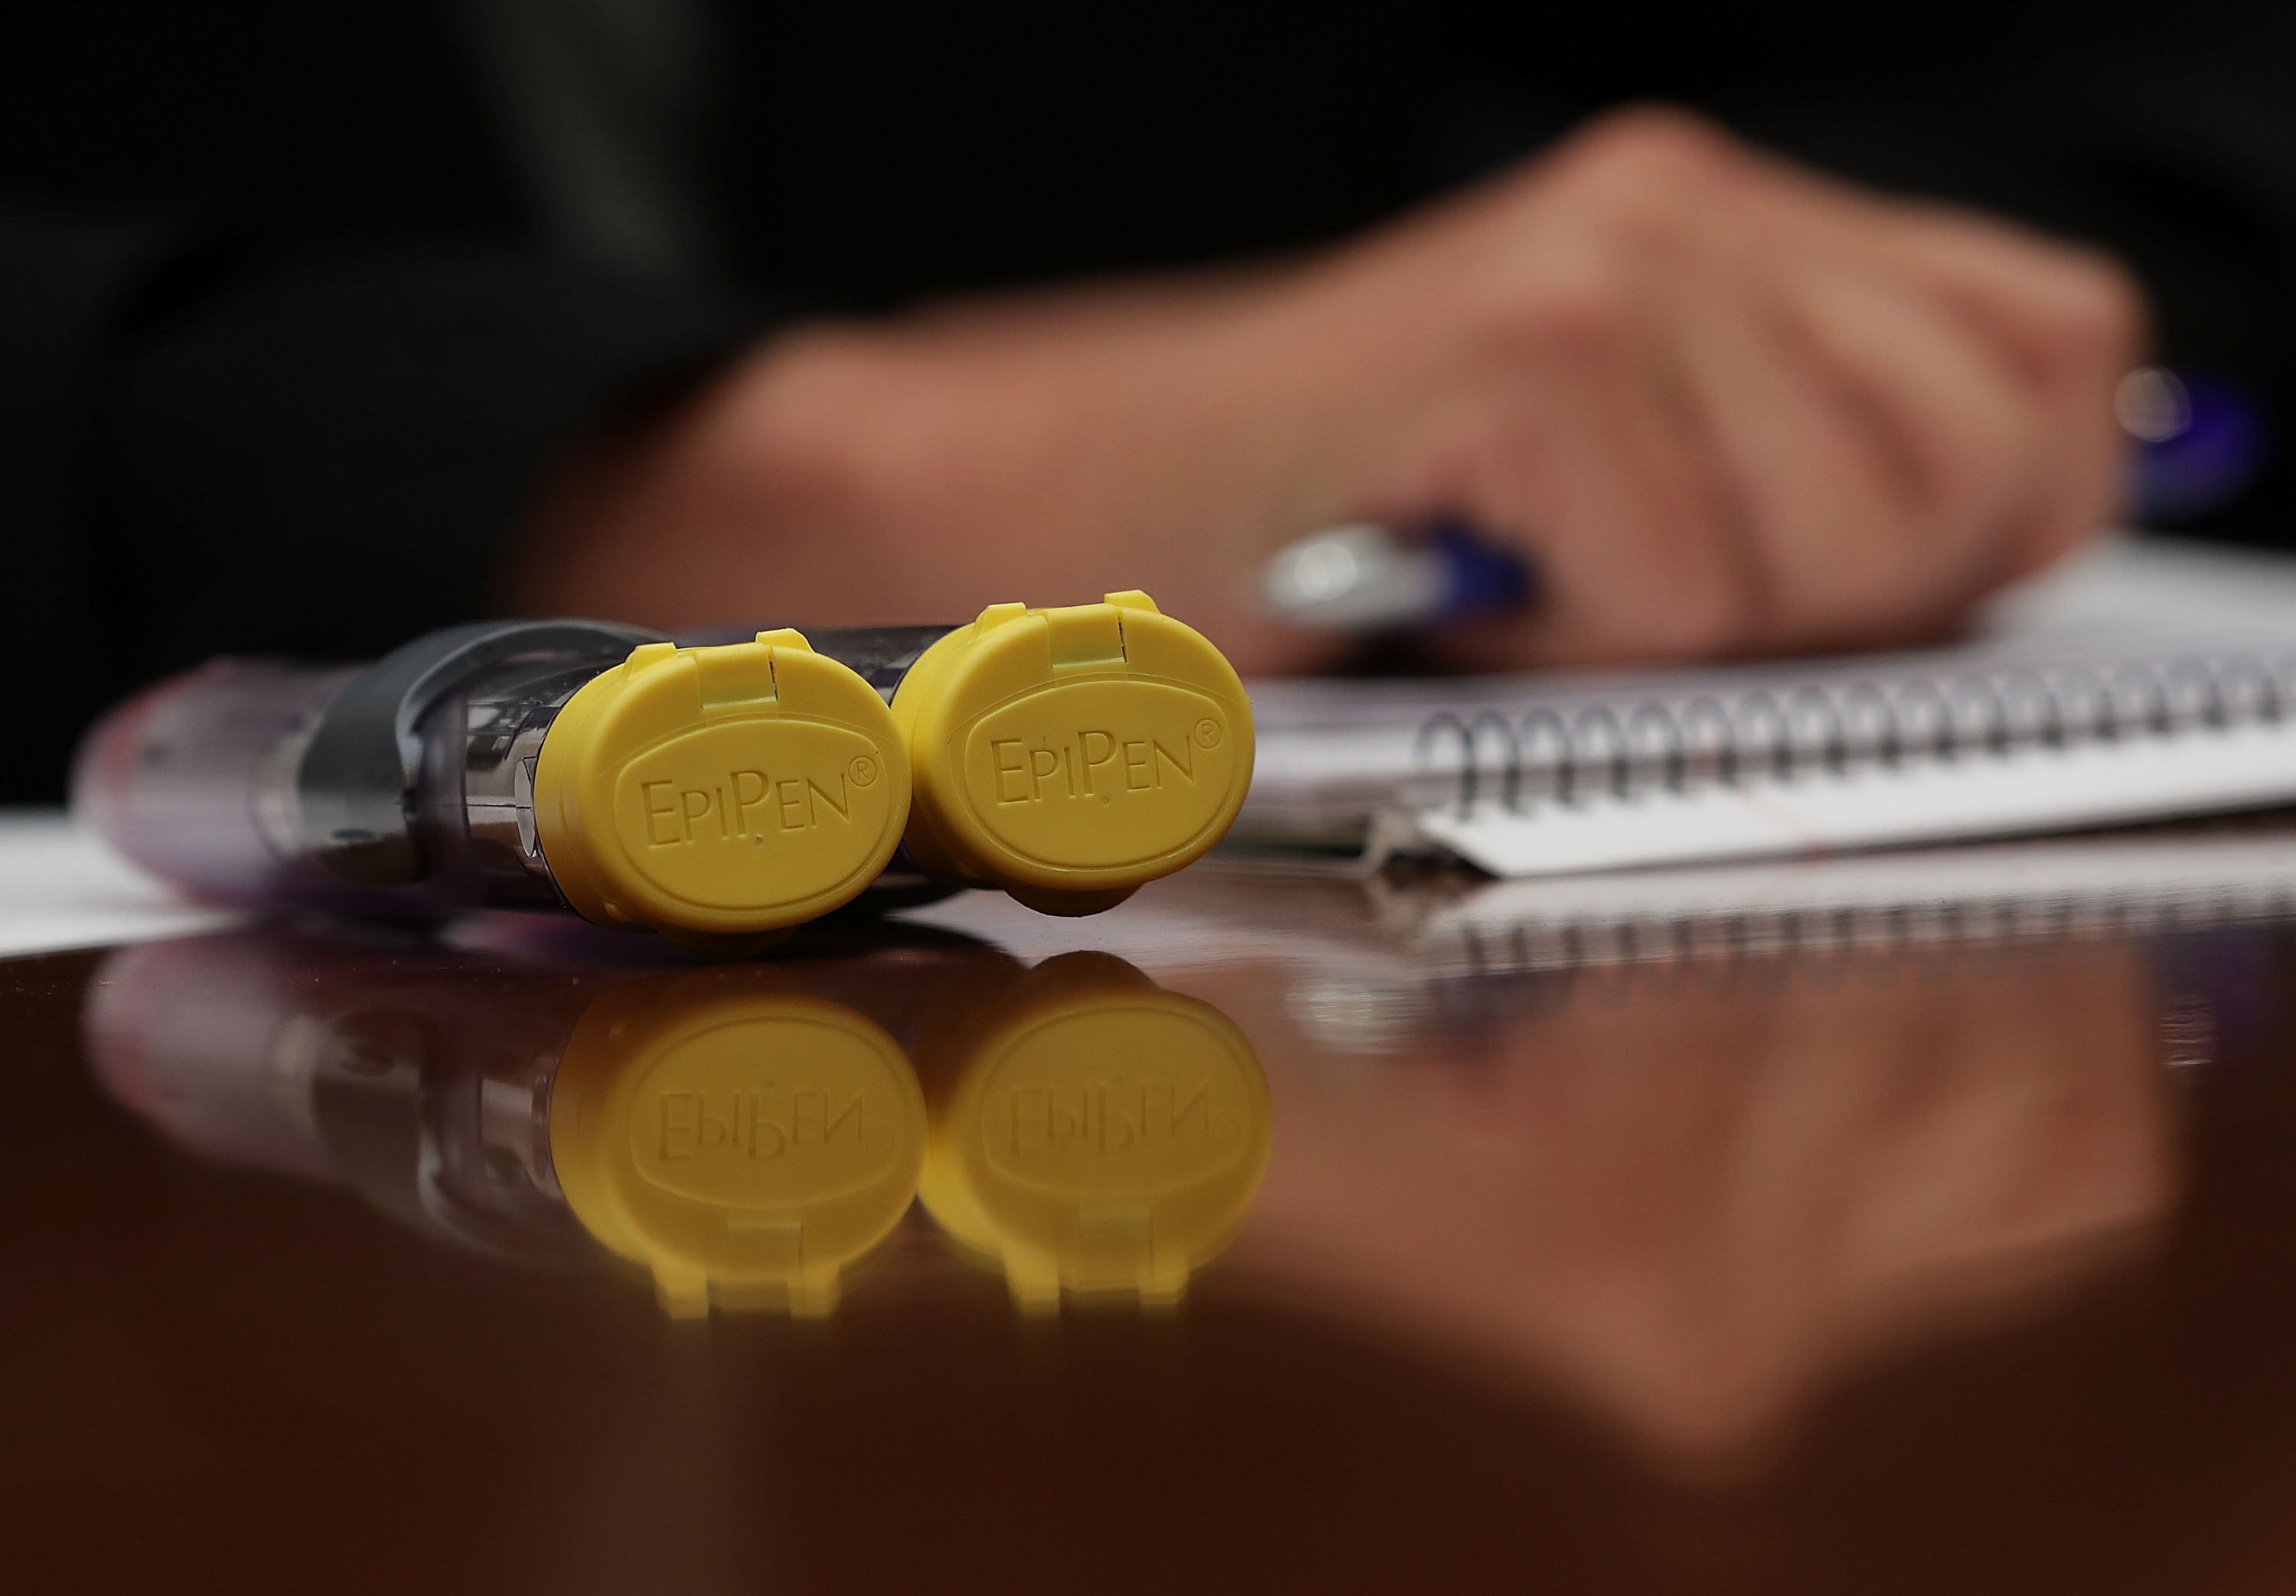 A 2-pack of EpiPen is seen on the witness table during a hearing before the House Oversight and Government Reform Committee September 21, 2016 on Capitol Hill in Washington, D.C.